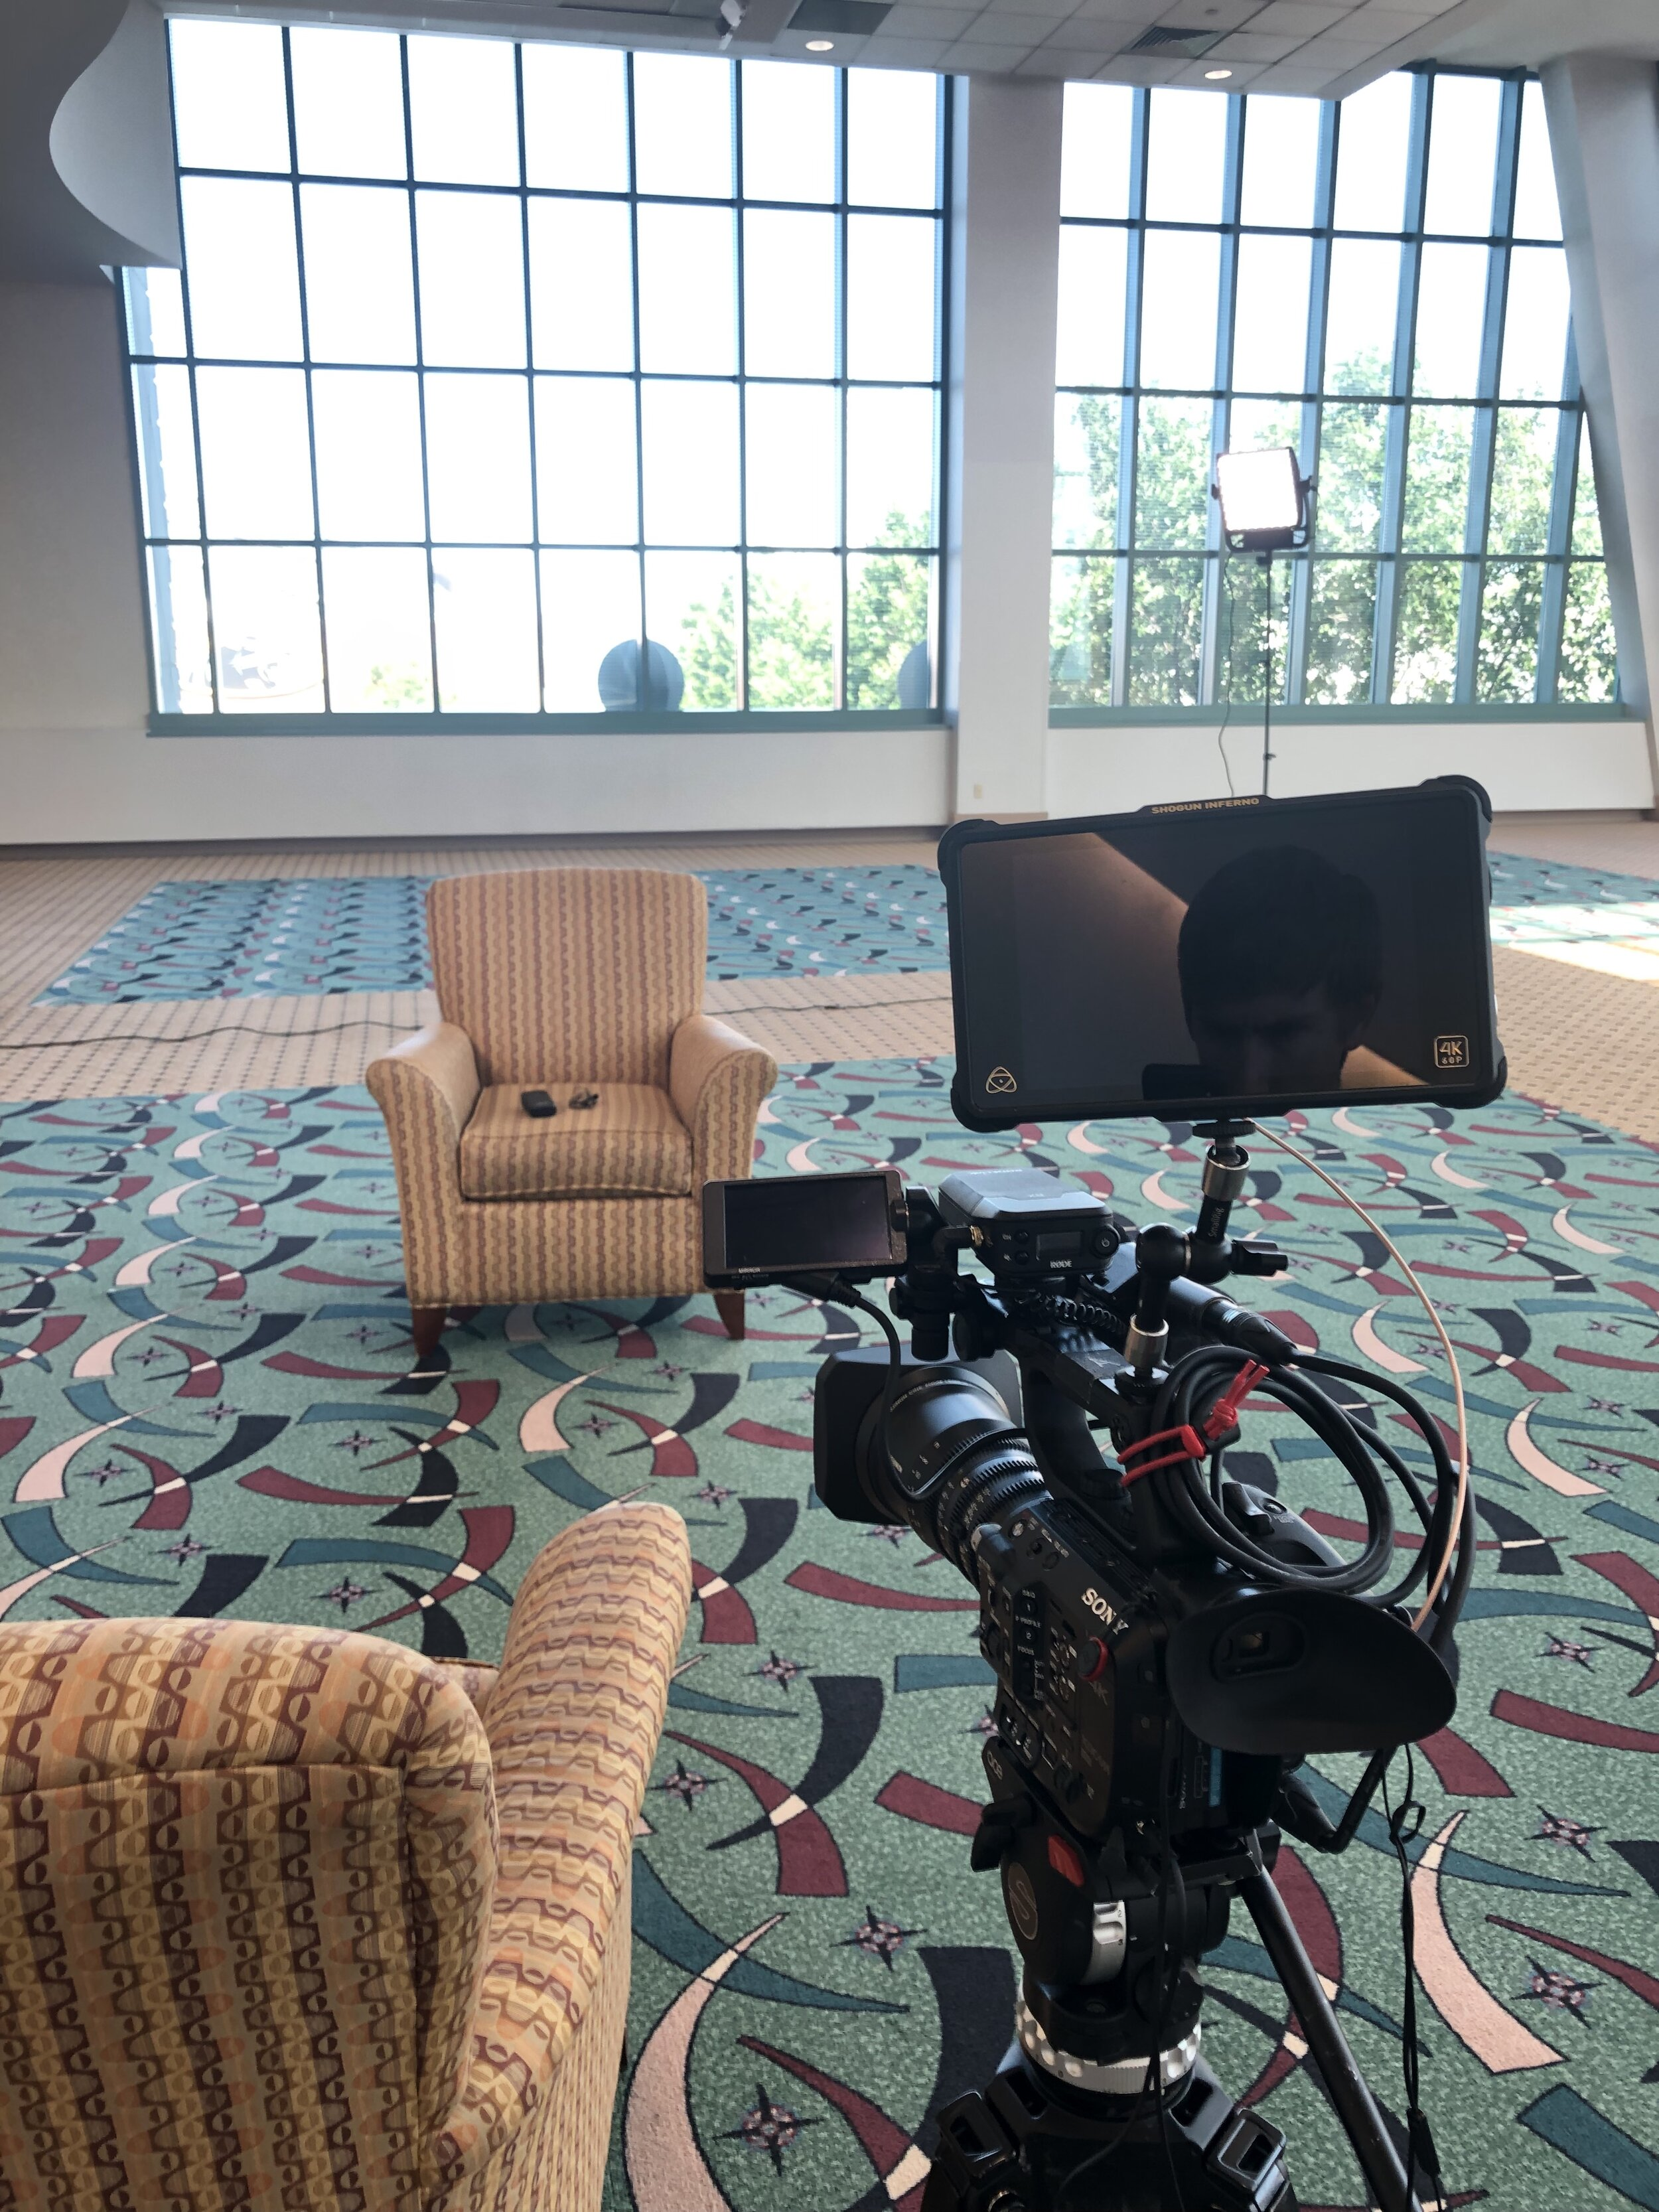 My FS5 ahead of an interview within a conference center.